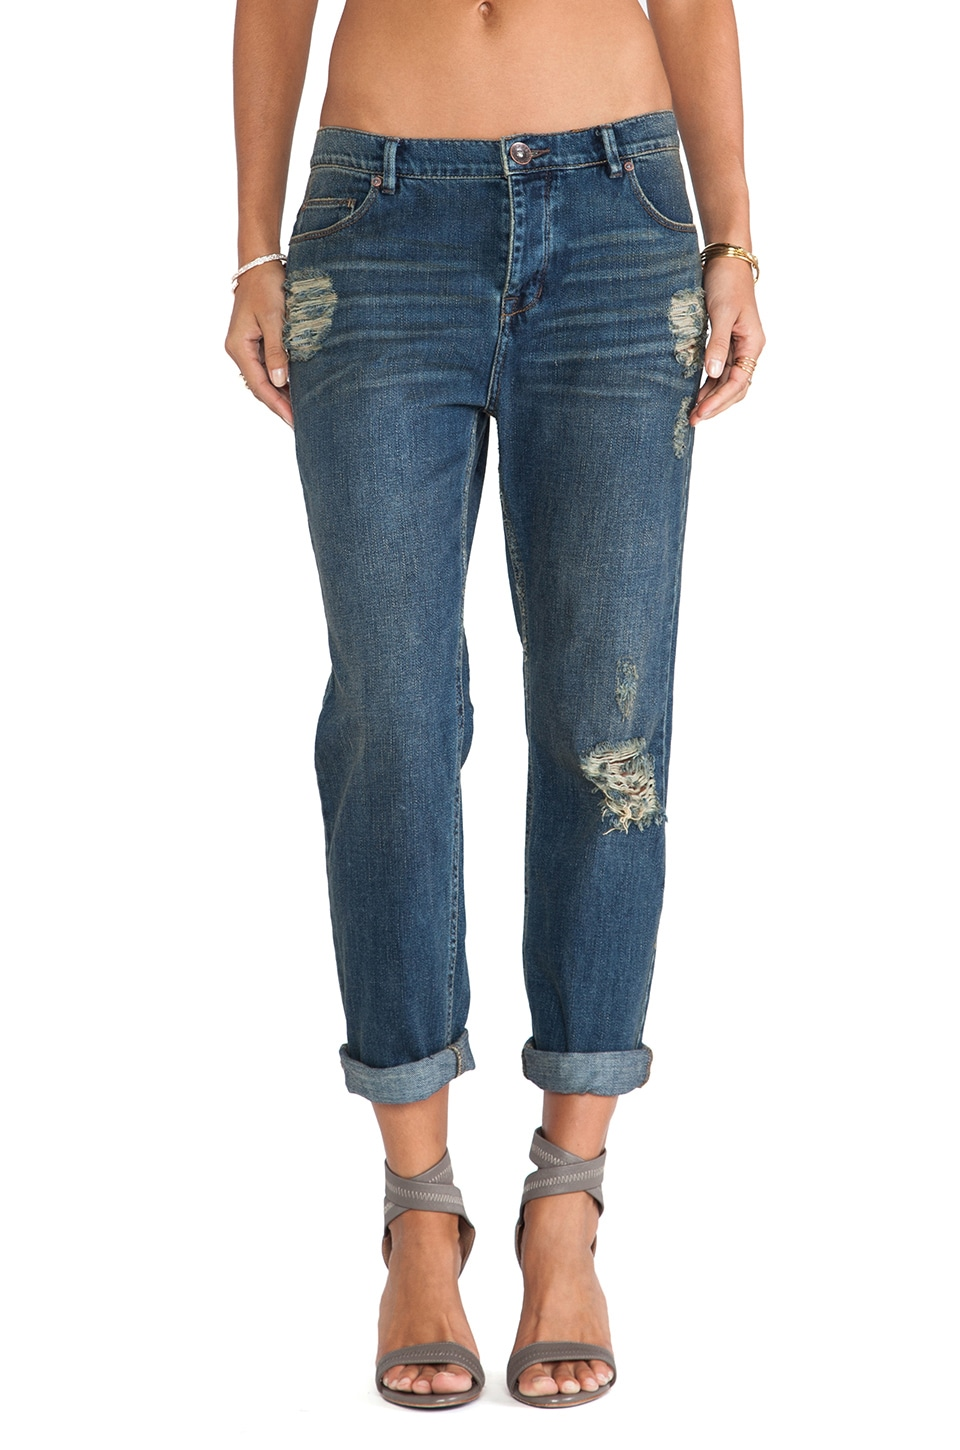 Free People Low Rise Boyfriend Jean in Lotus